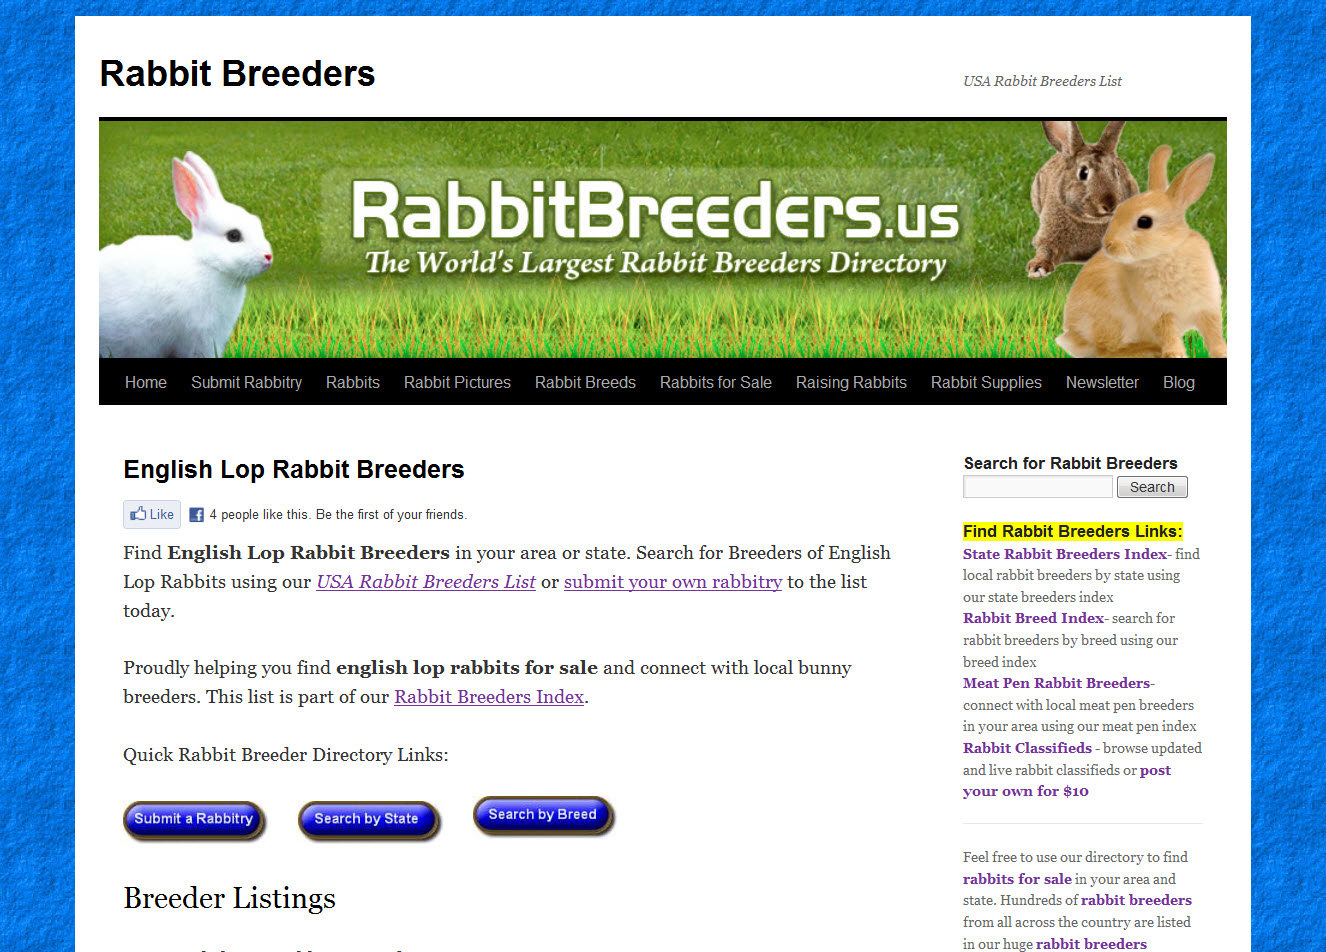 English Lop Rabbit Breeders